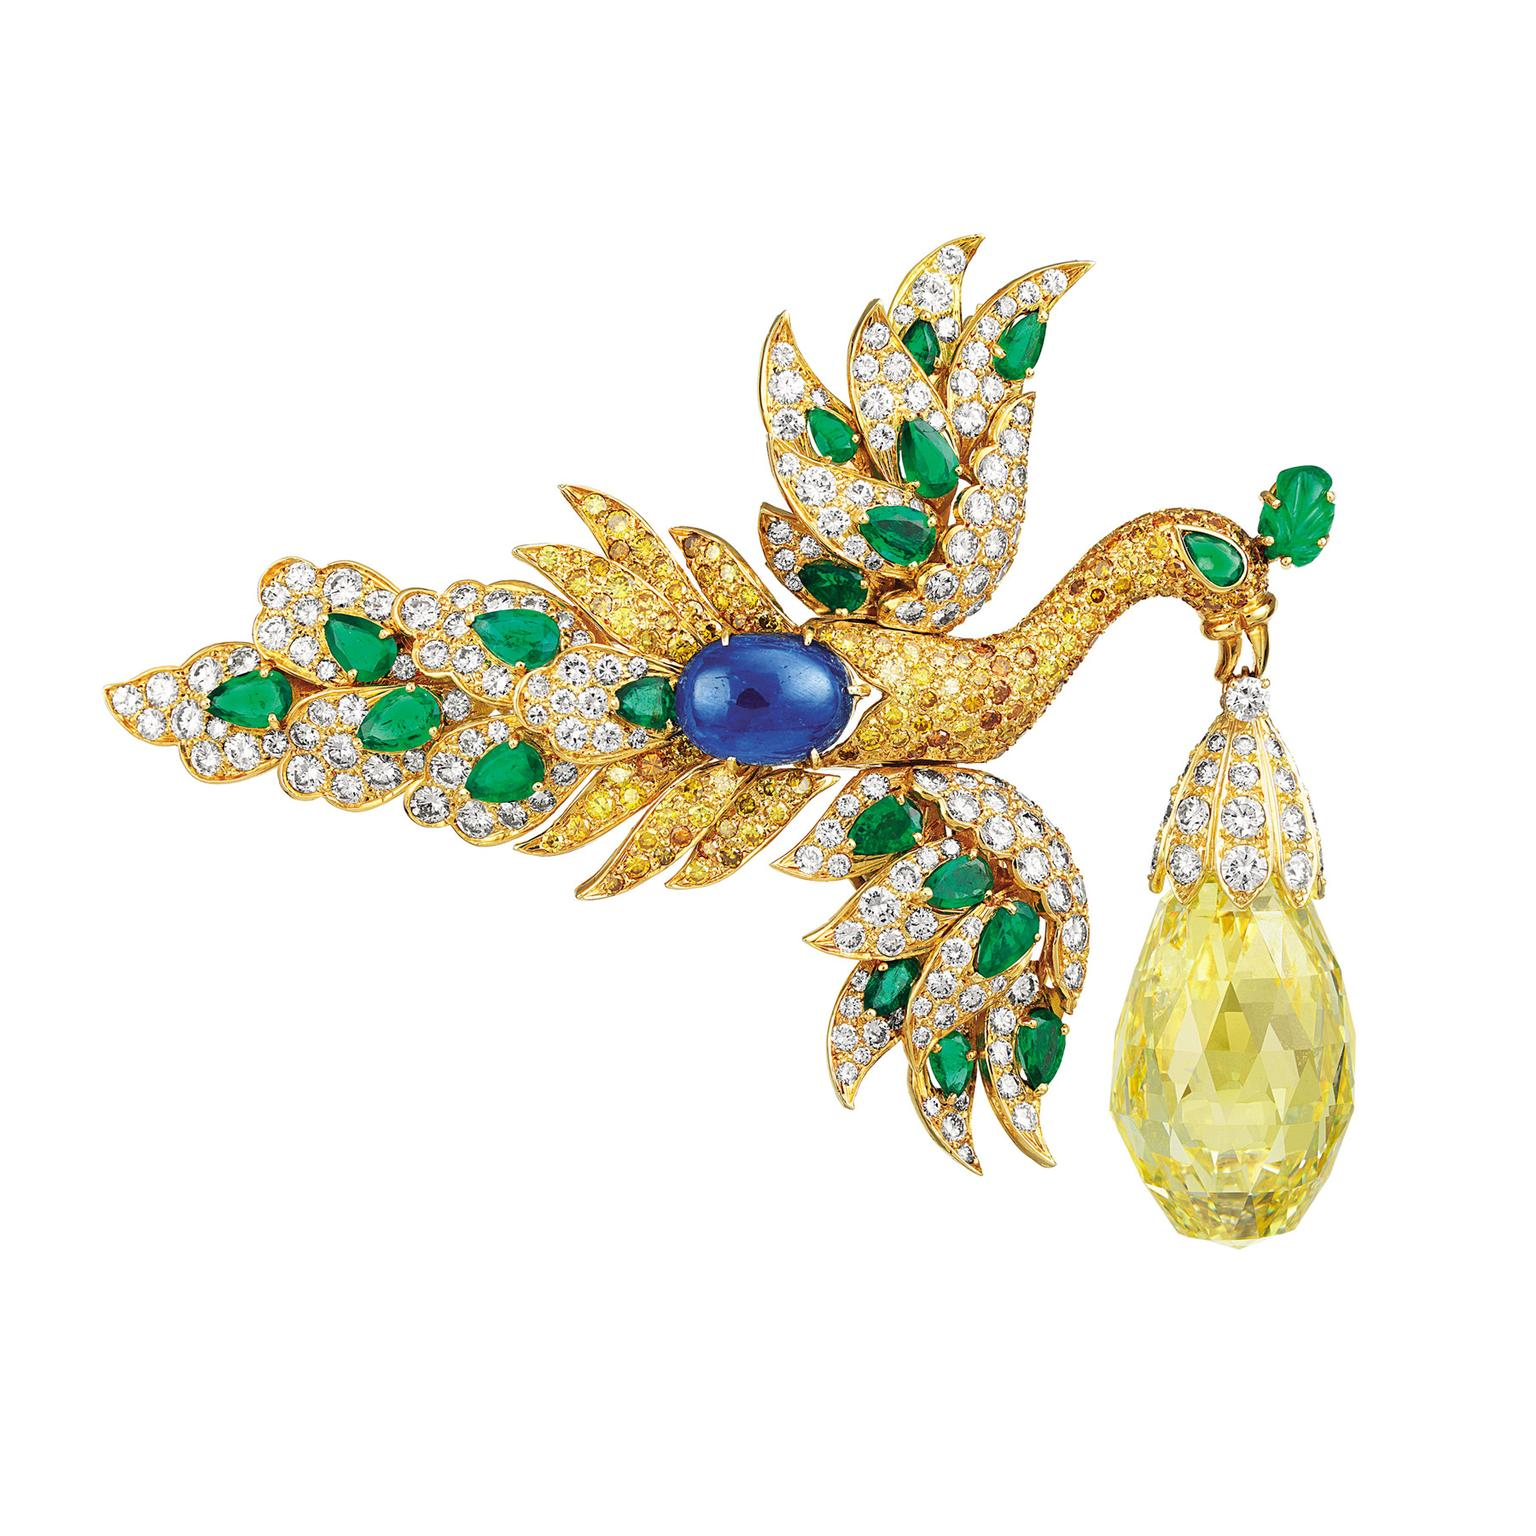 Van Cleef & Arpels yellow diamond bird clip and pendant